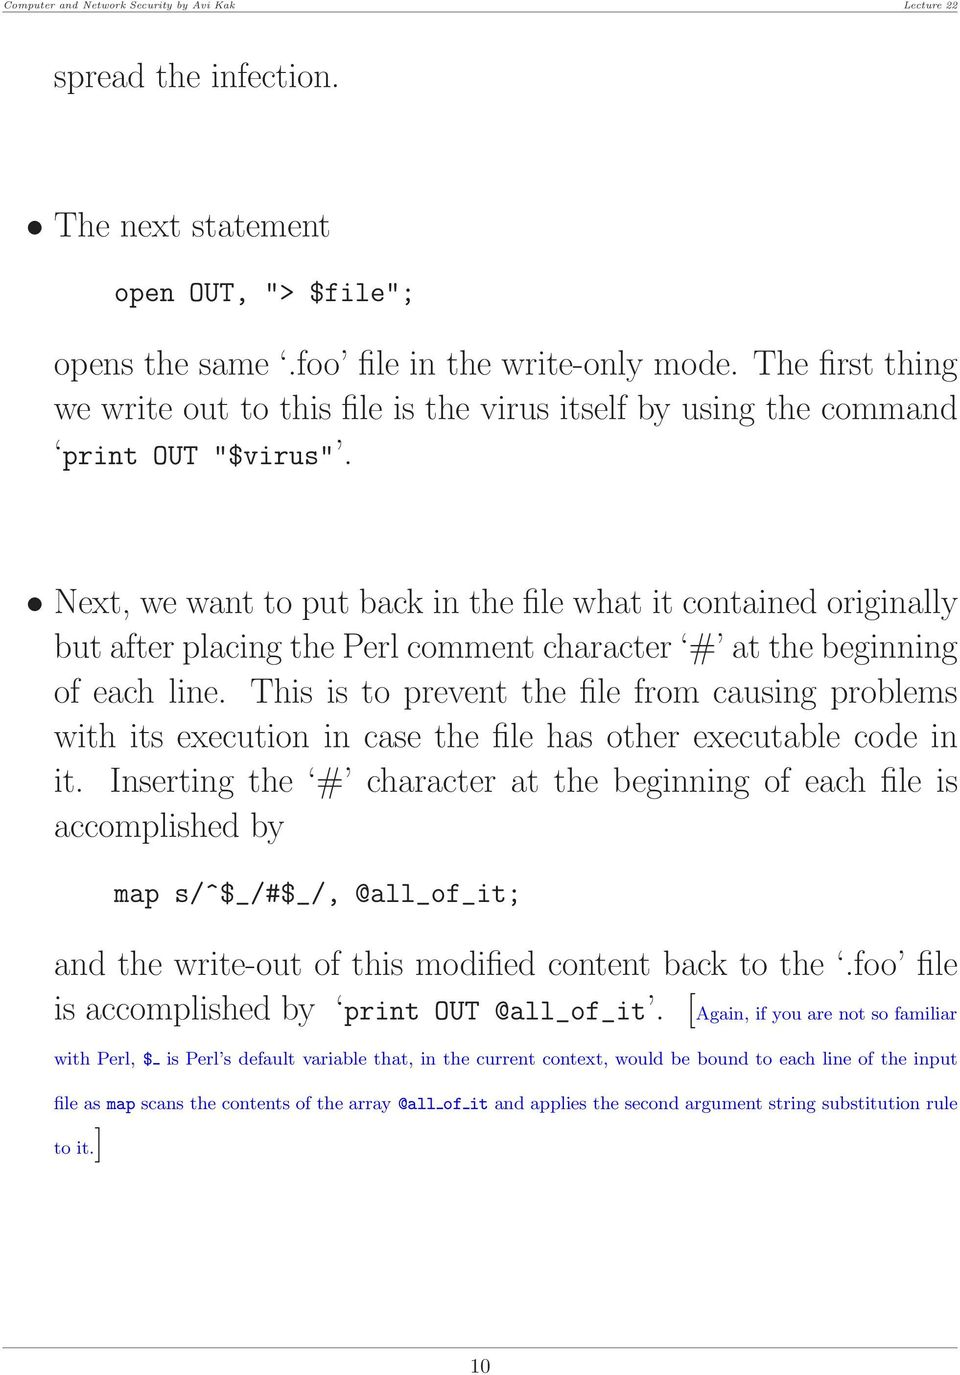 Next, we want to put back in the file what it contained originally but after placing the Perl comment character # at the beginning of each line.